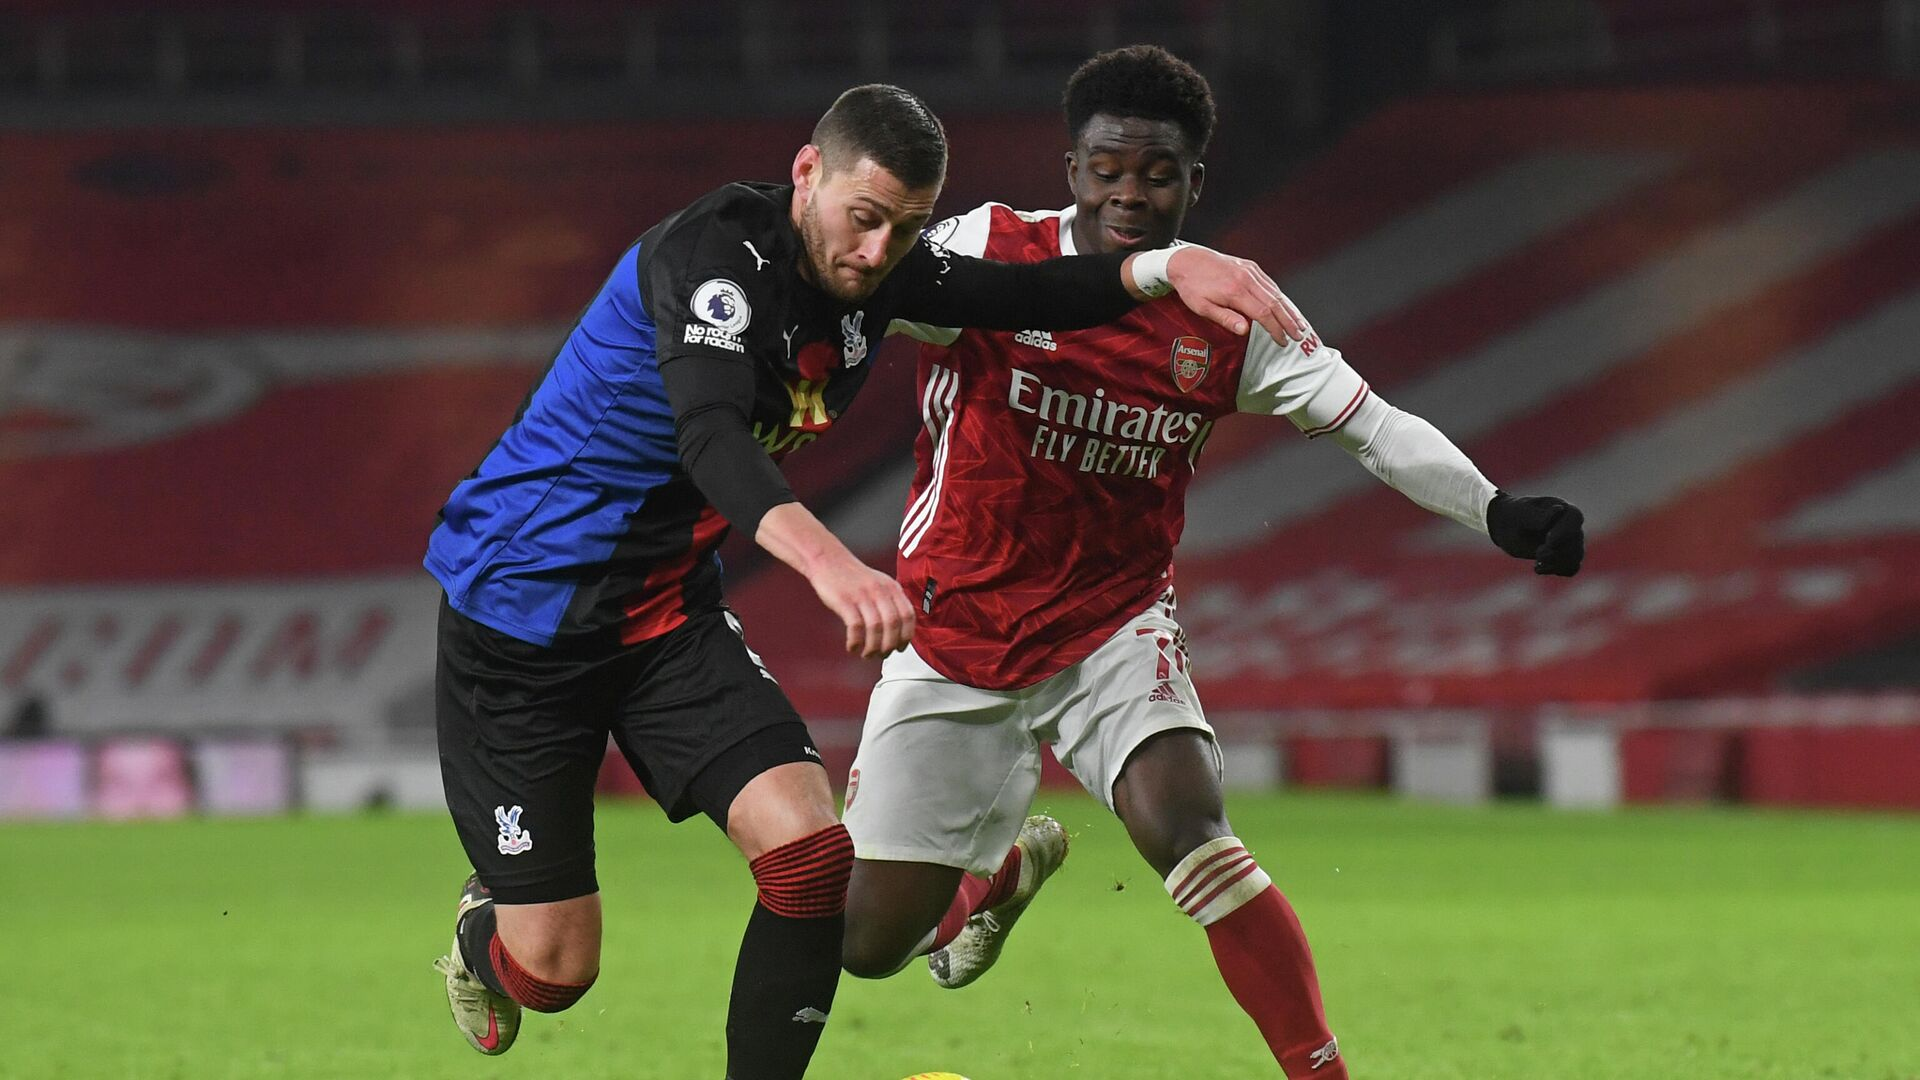 Crystal Palace's English defender Joel Ward (L) vies with Arsenal's English striker Bukayo Saka (R) during the English Premier League football match between Arsenal and Crystal Palace at the Emirates Stadium in London on January 14, 2021. (Photo by NEIL HALL / POOL / AFP) / RESTRICTED TO EDITORIAL USE. No use with unauthorized audio, video, data, fixture lists, club/league logos or 'live' services. Online in-match use limited to 120 images. An additional 40 images may be used in extra time. No video emulation. Social media in-match use limited to 120 images. An additional 40 images may be used in extra time. No use in betting publications, games or single club/league/player publications. /  - РИА Новости, 1920, 15.01.2021